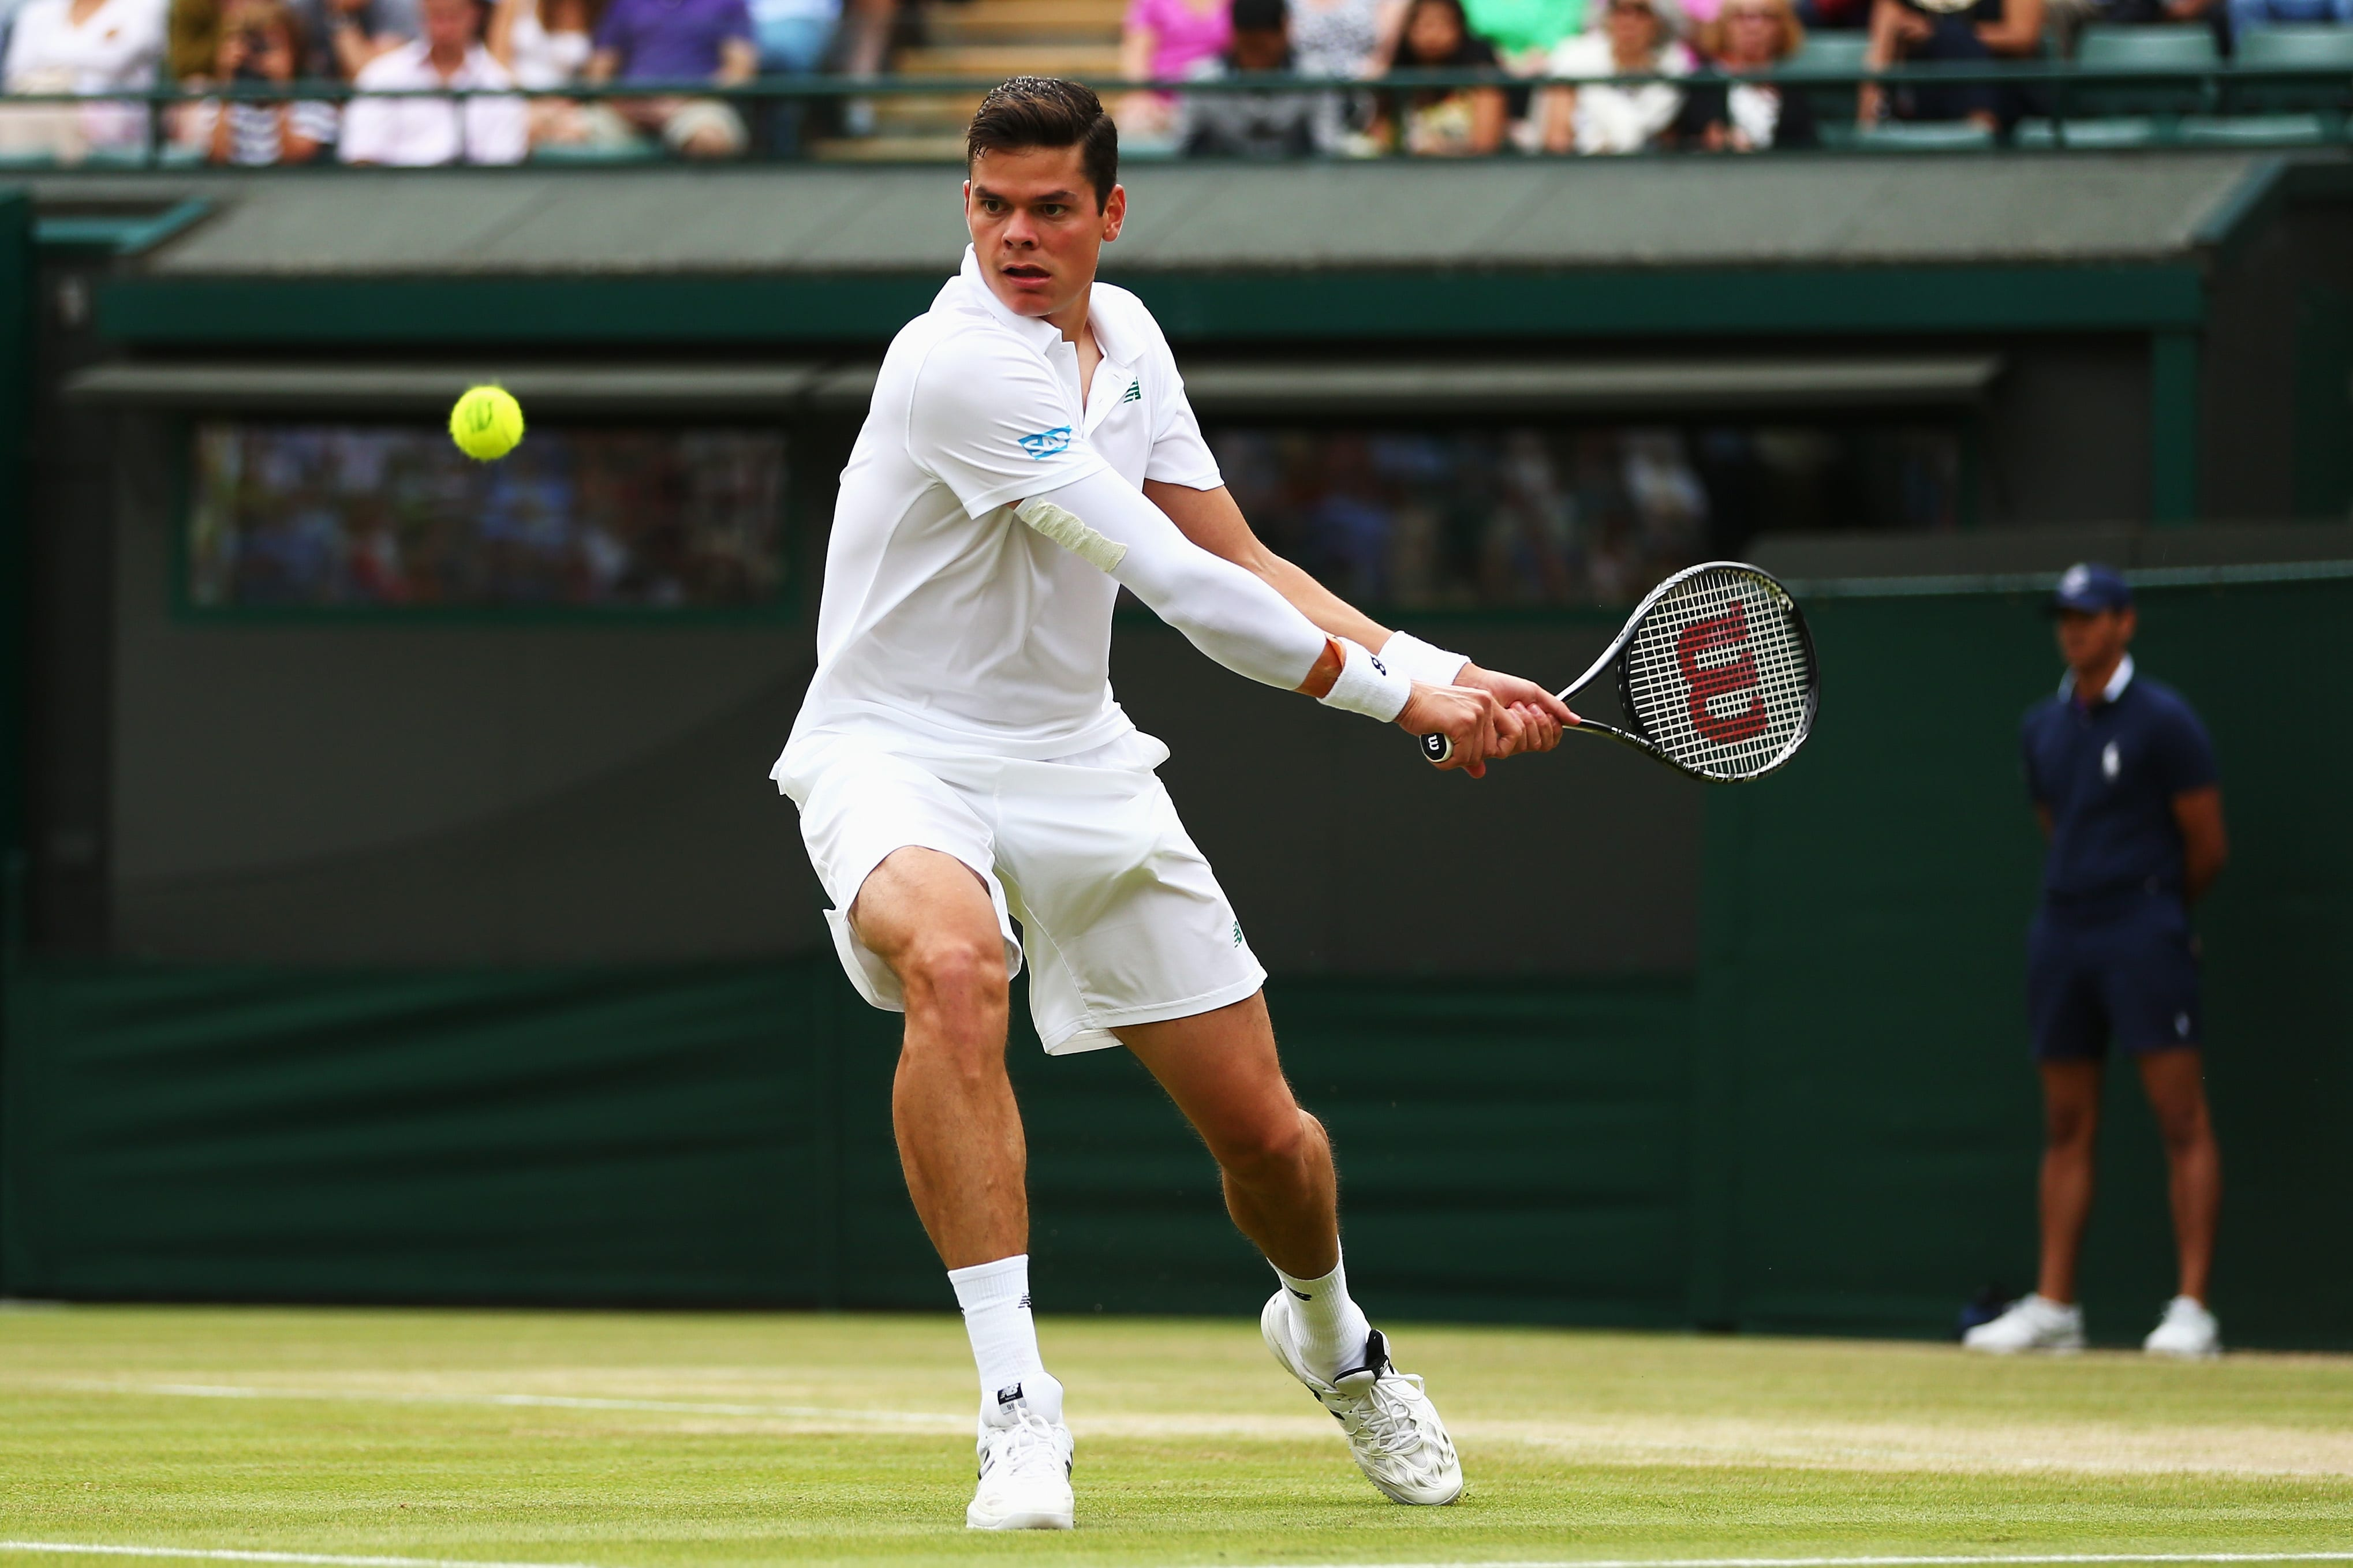 Odds against Canadian Milos Raonic in Wimbledon Final | Sports Interaction